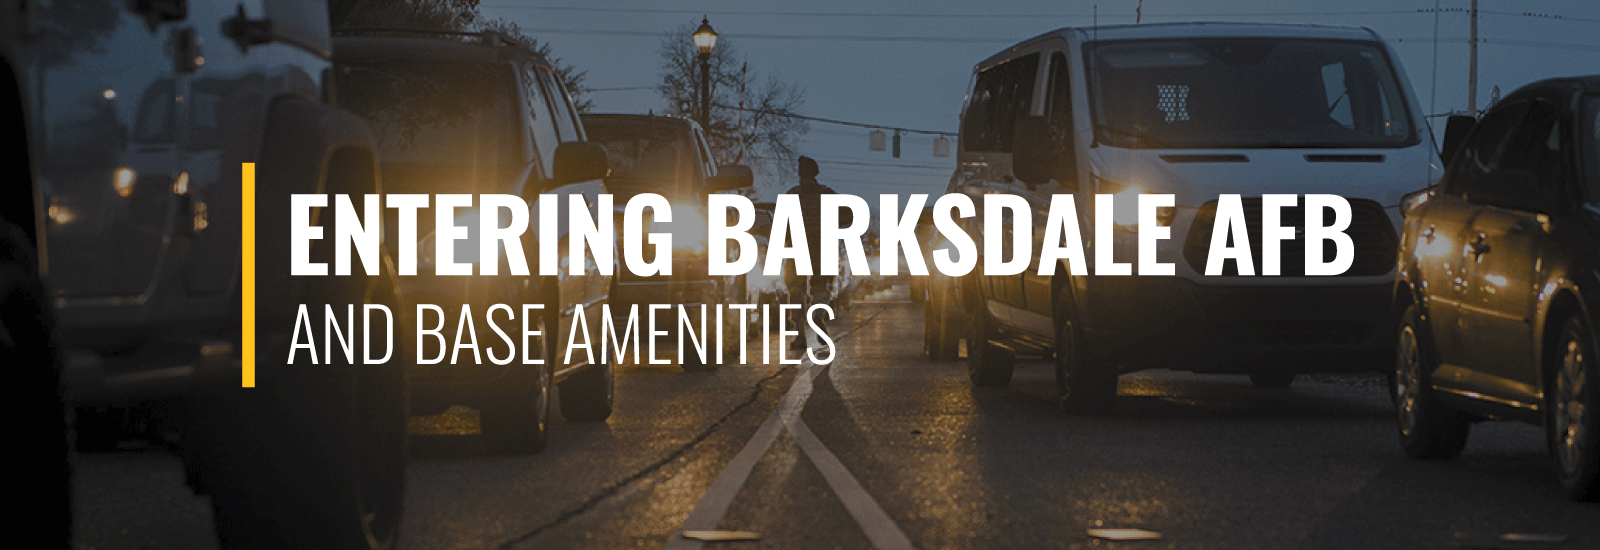 Entering Barksdale AFB and Amenities